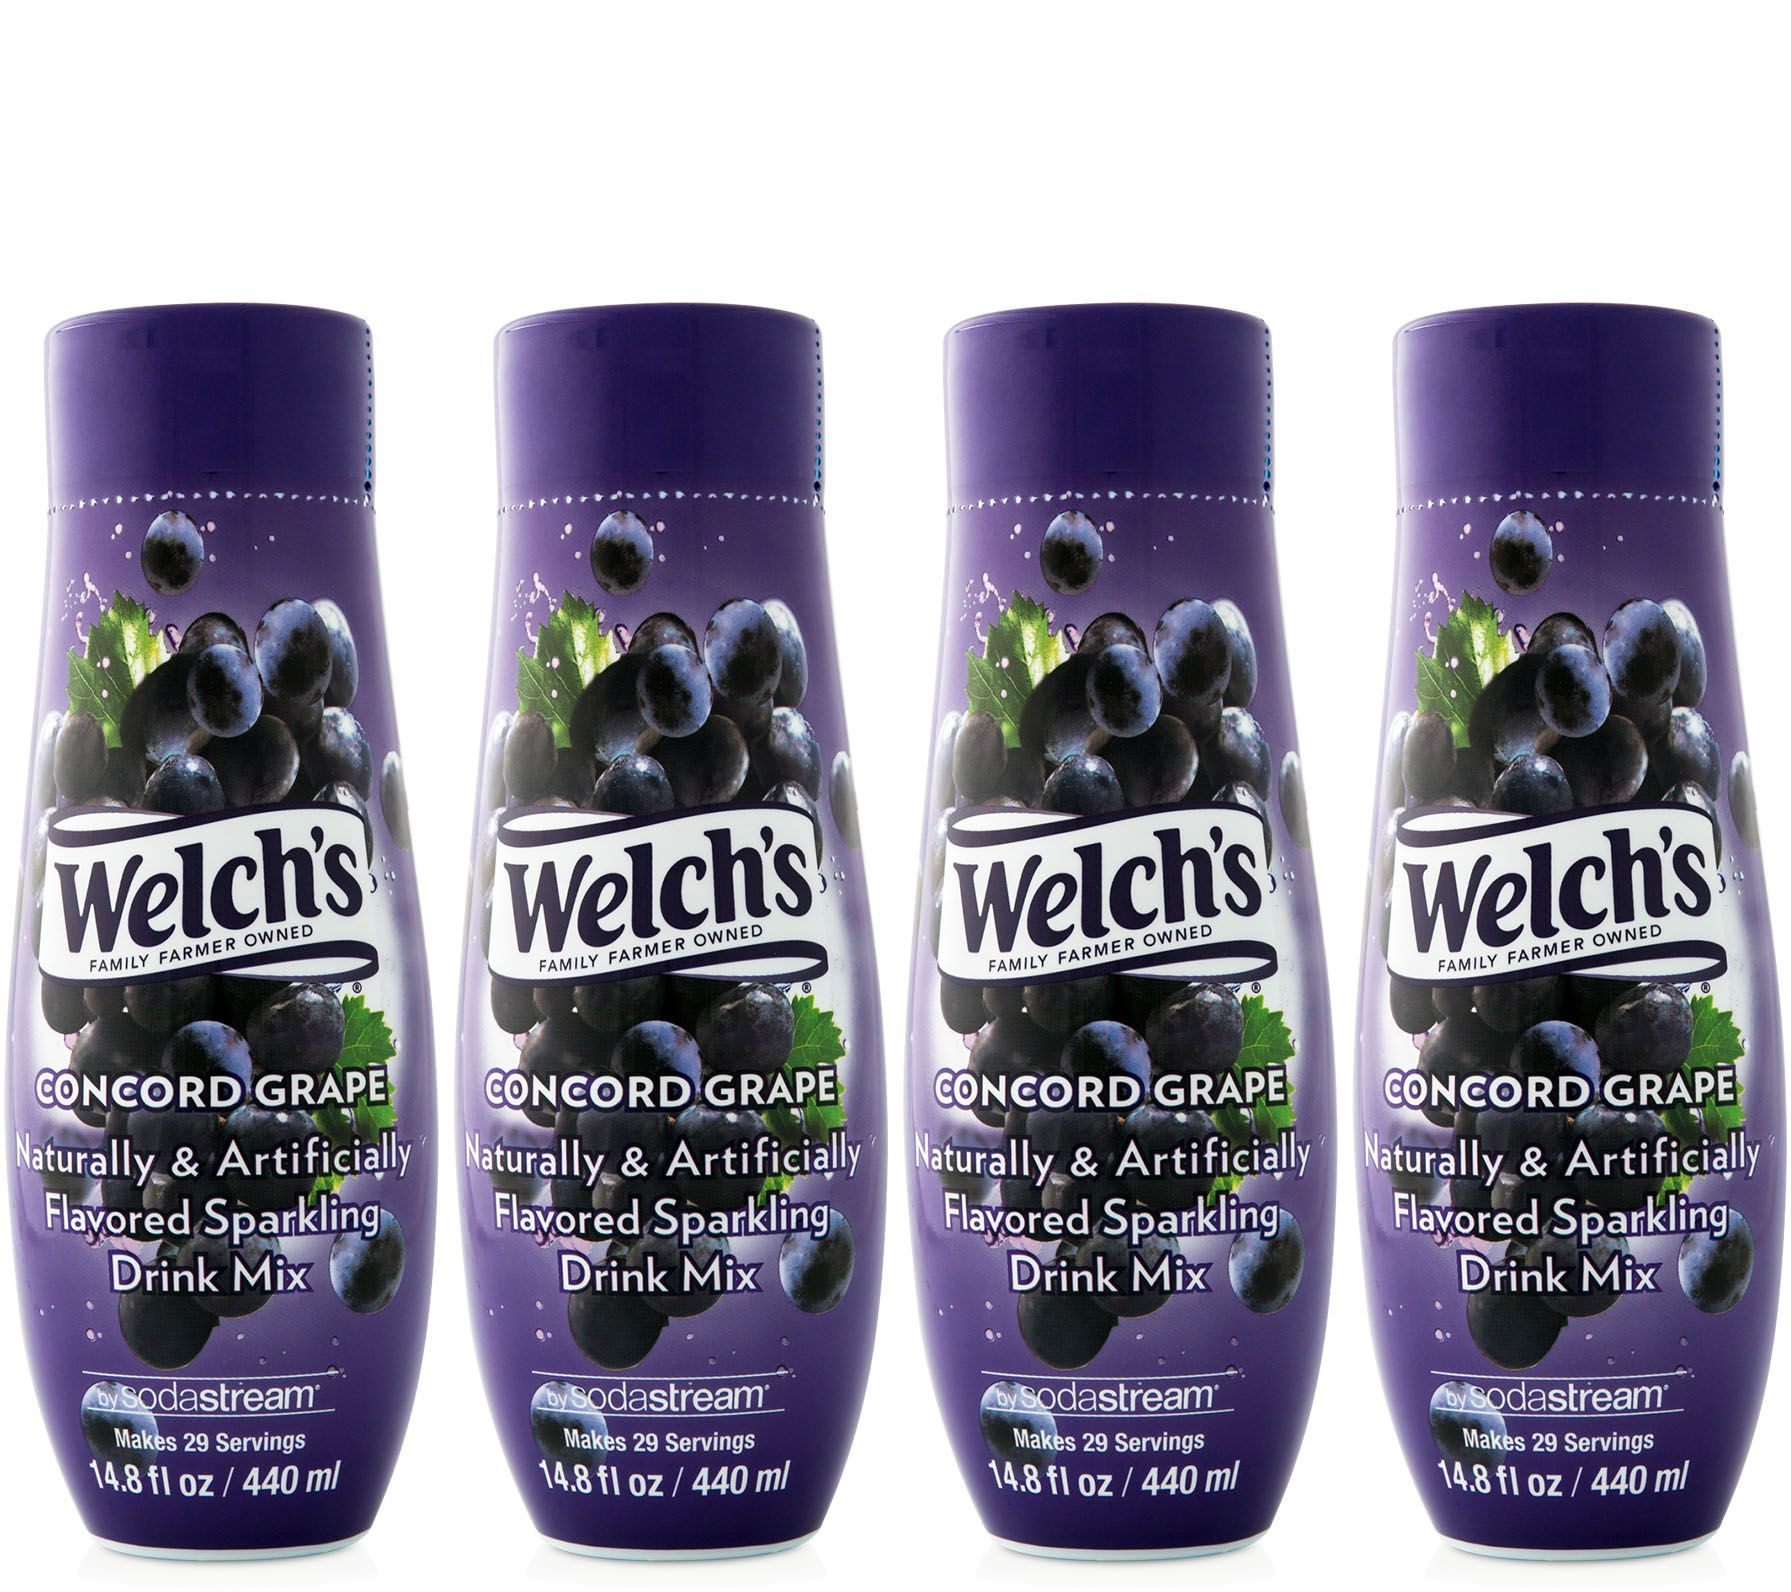 SodaStream Welch's Concord Grape Sparkling Drink Mix 4 ...